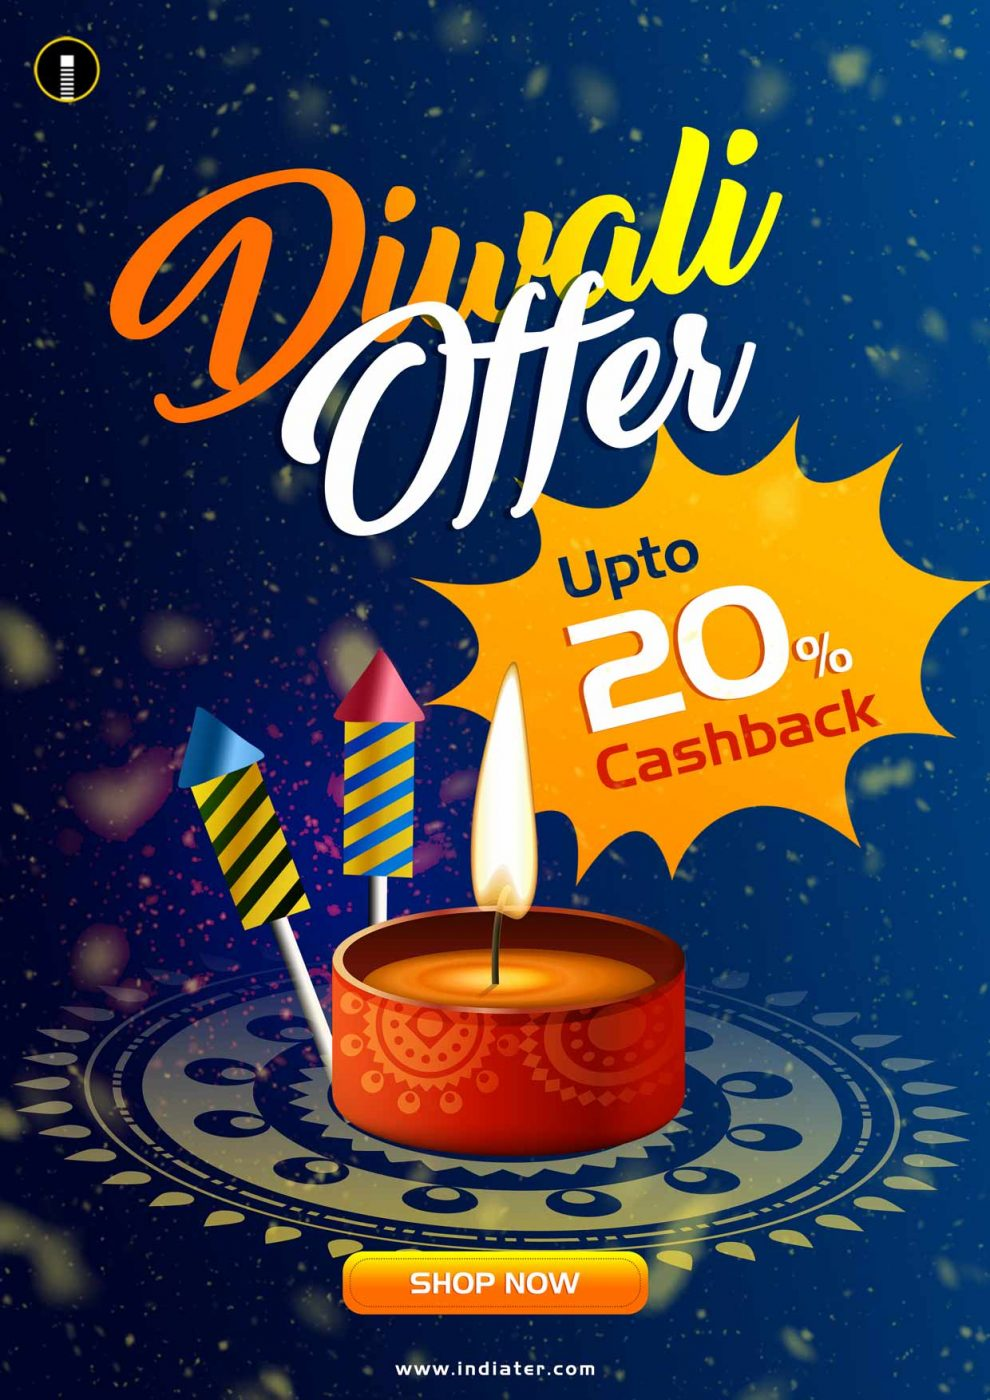 diwali-offer-promotion-banner-free-psd-free-download